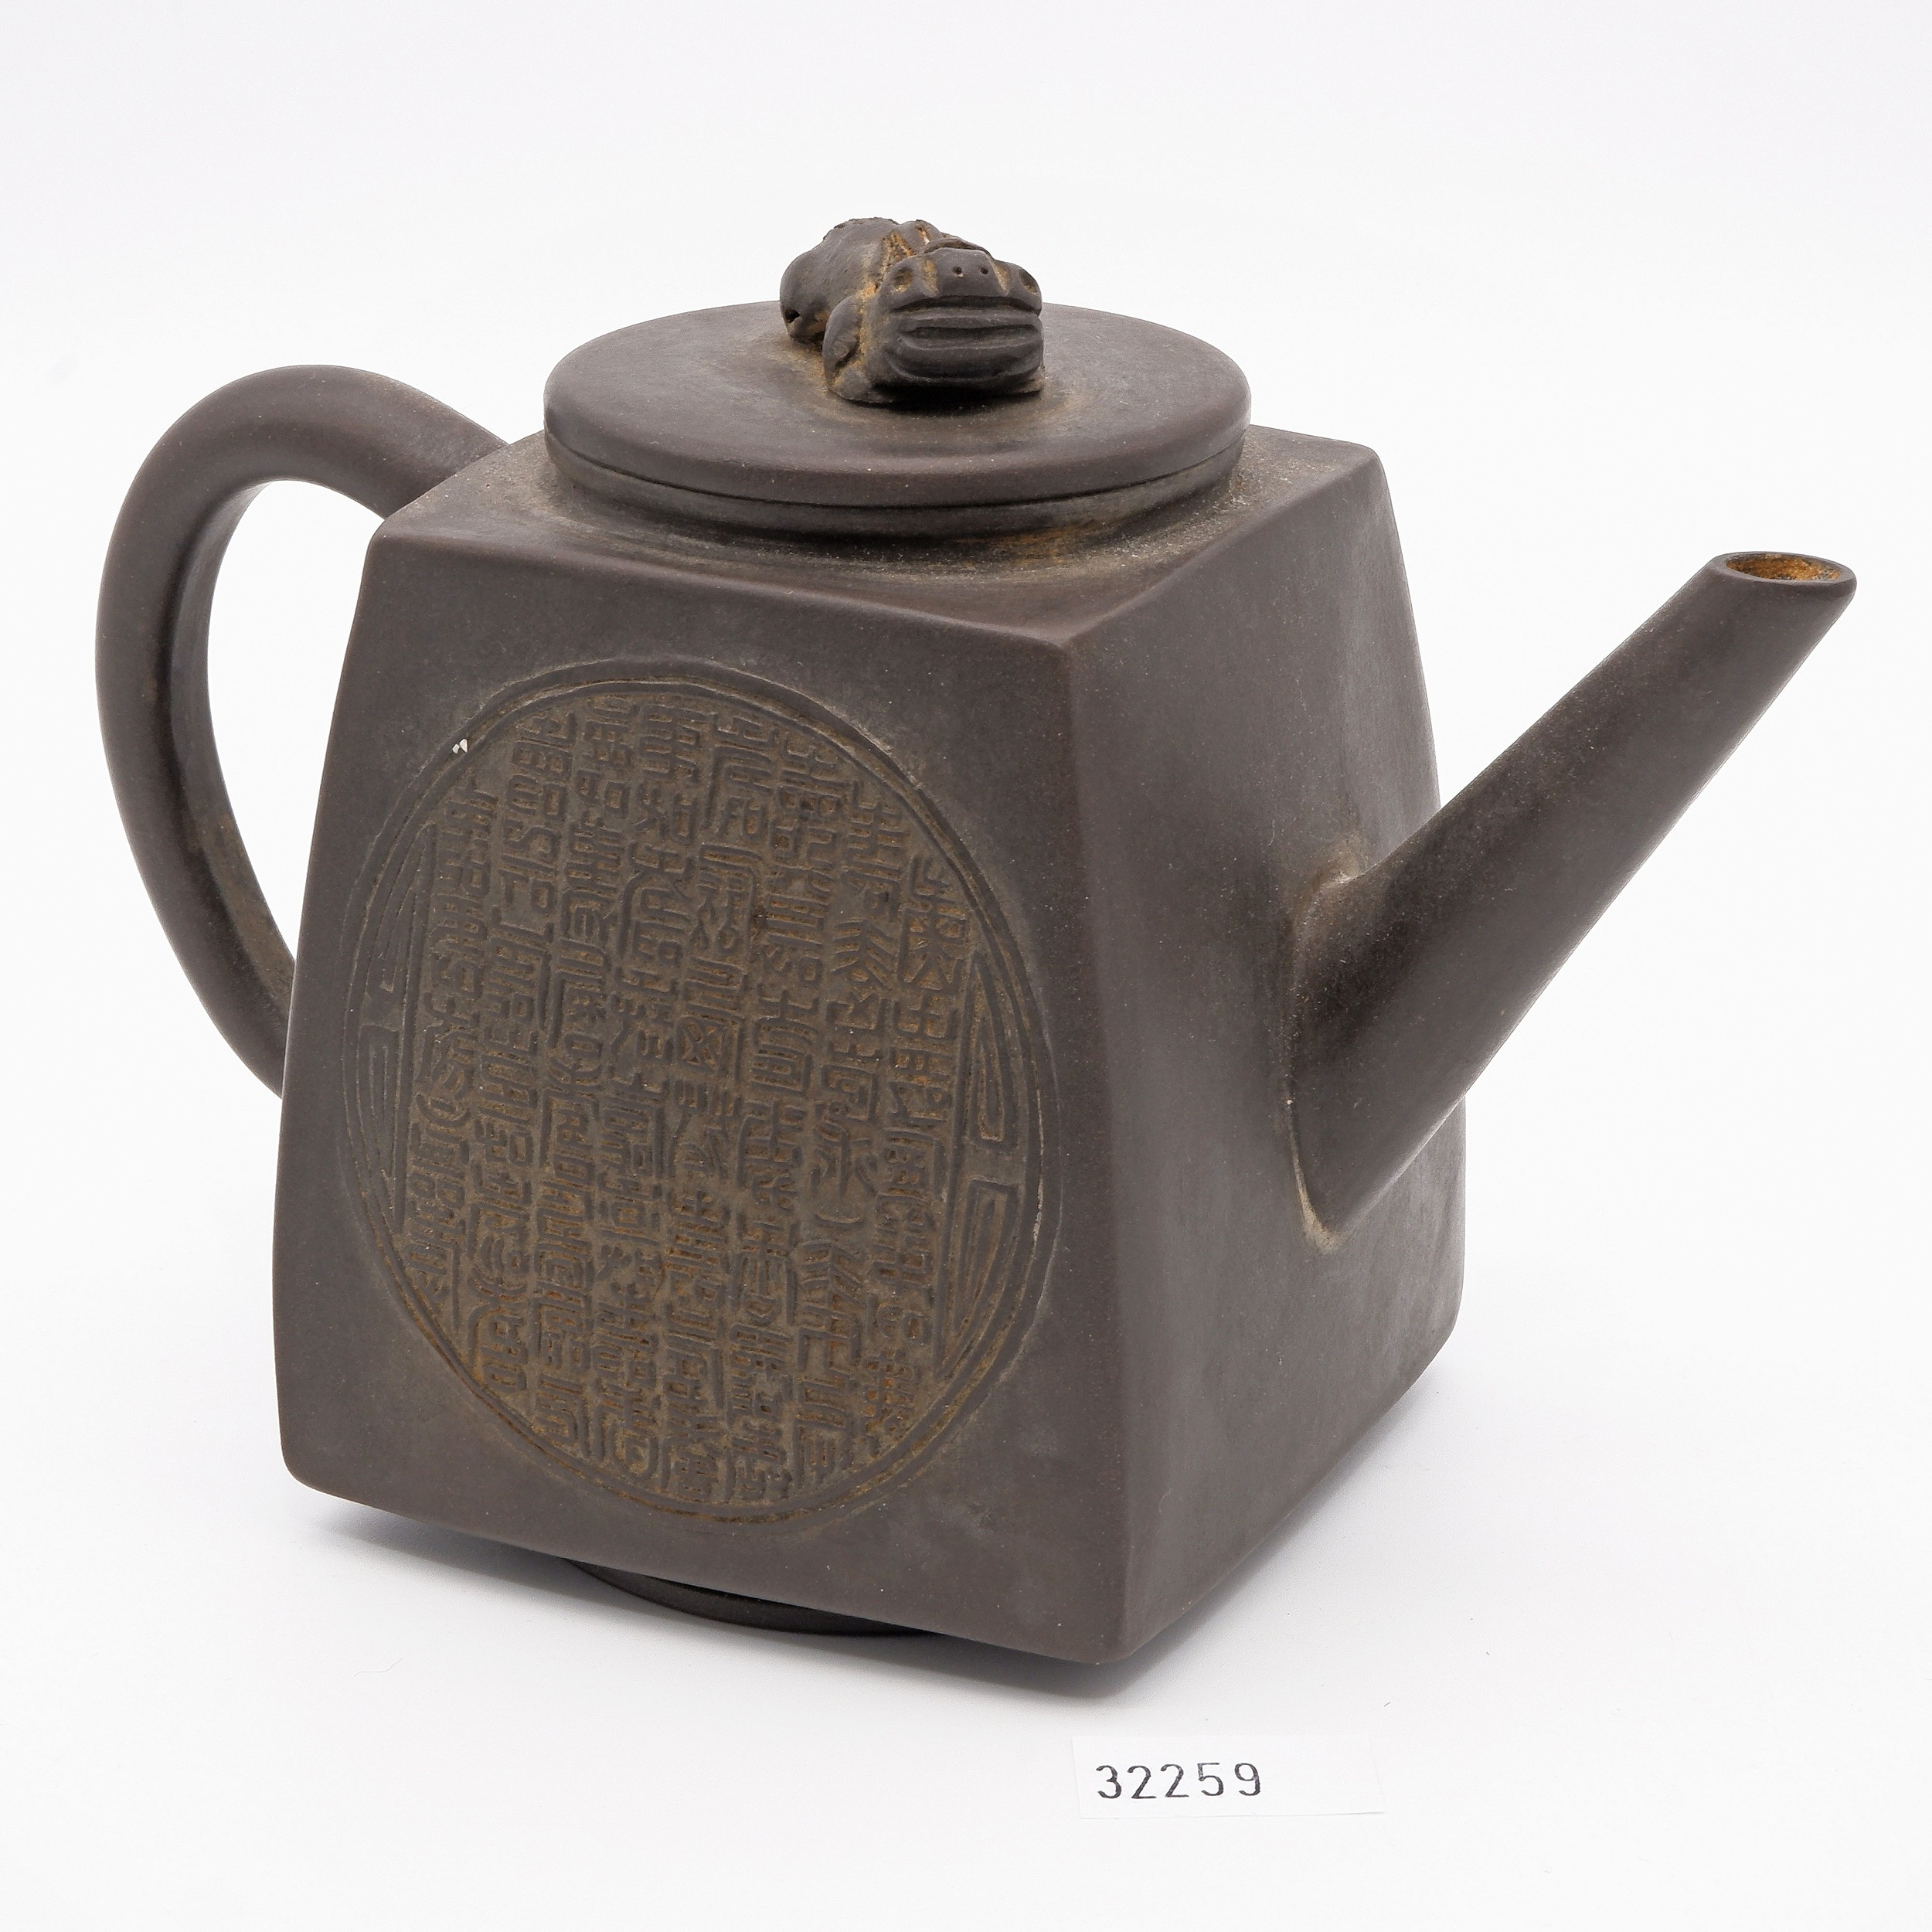 'Chinese Yixing Pottery Teapot with Calligraphy Roundel'